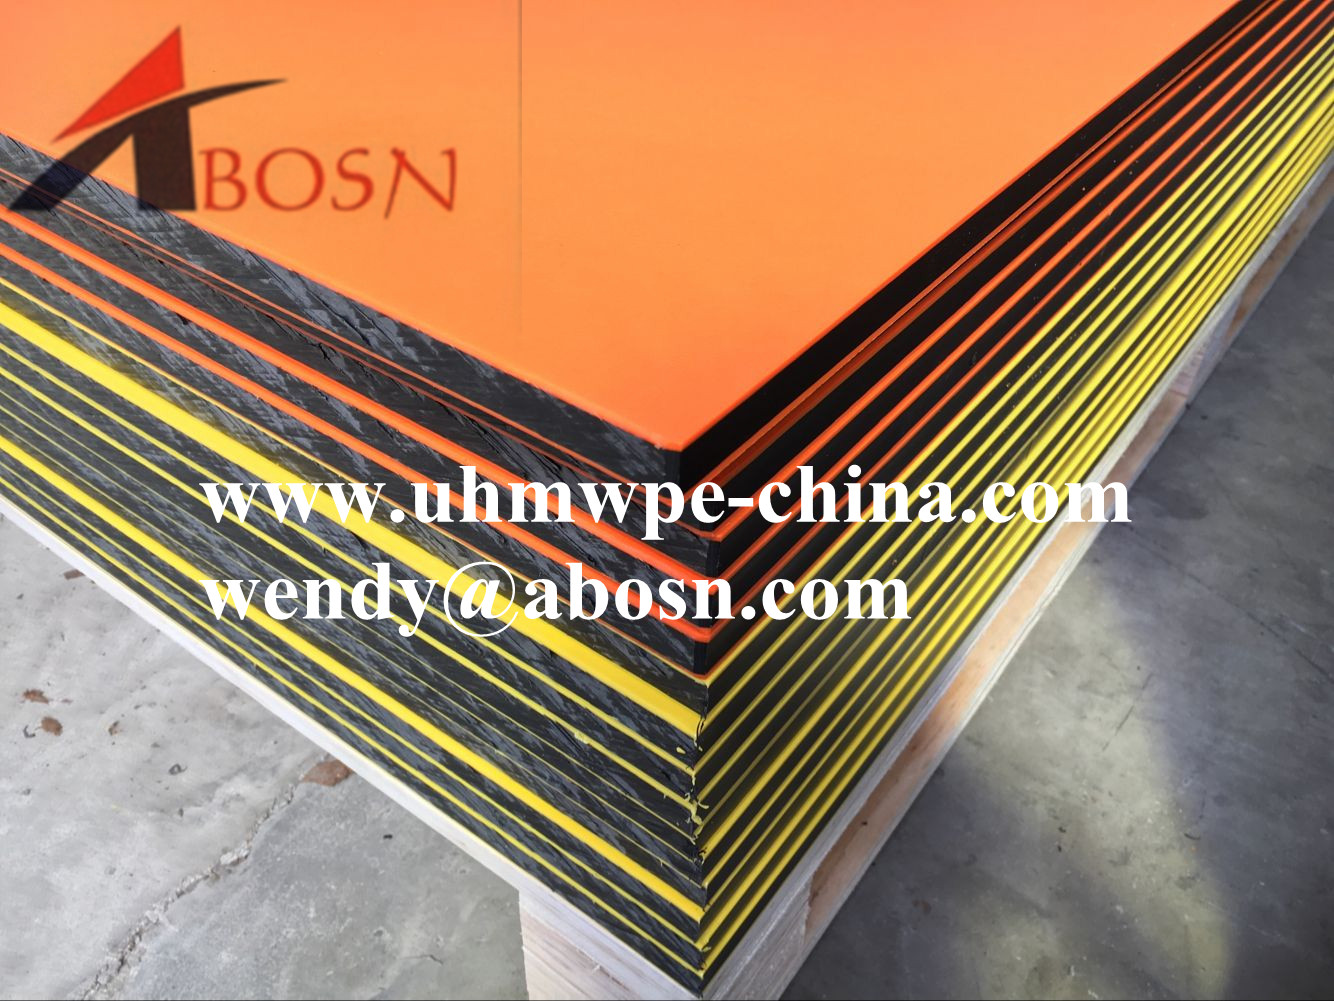 HDPE Tricolor Sheet for Engraving